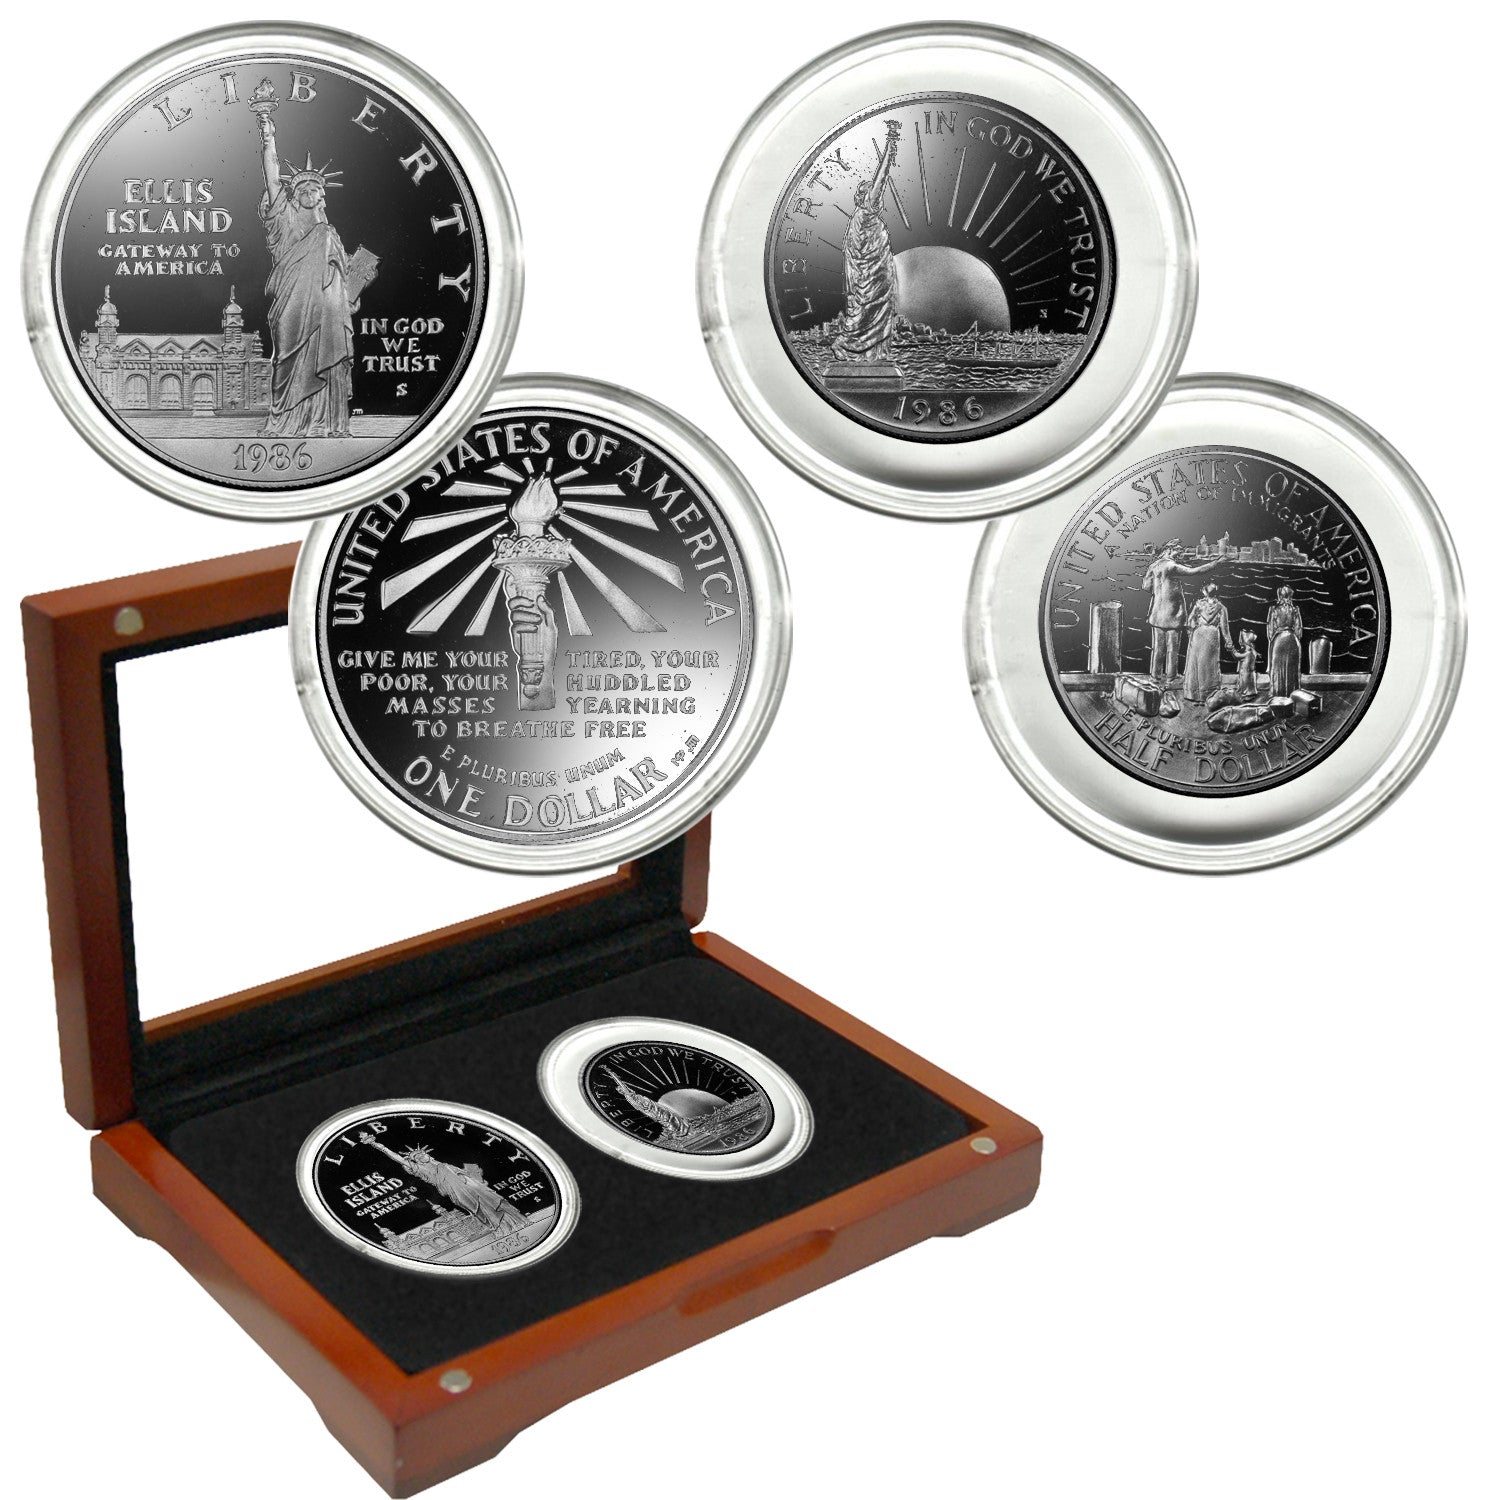 1986 Statue of Liberty 2 Coin Set Set Proof Condition